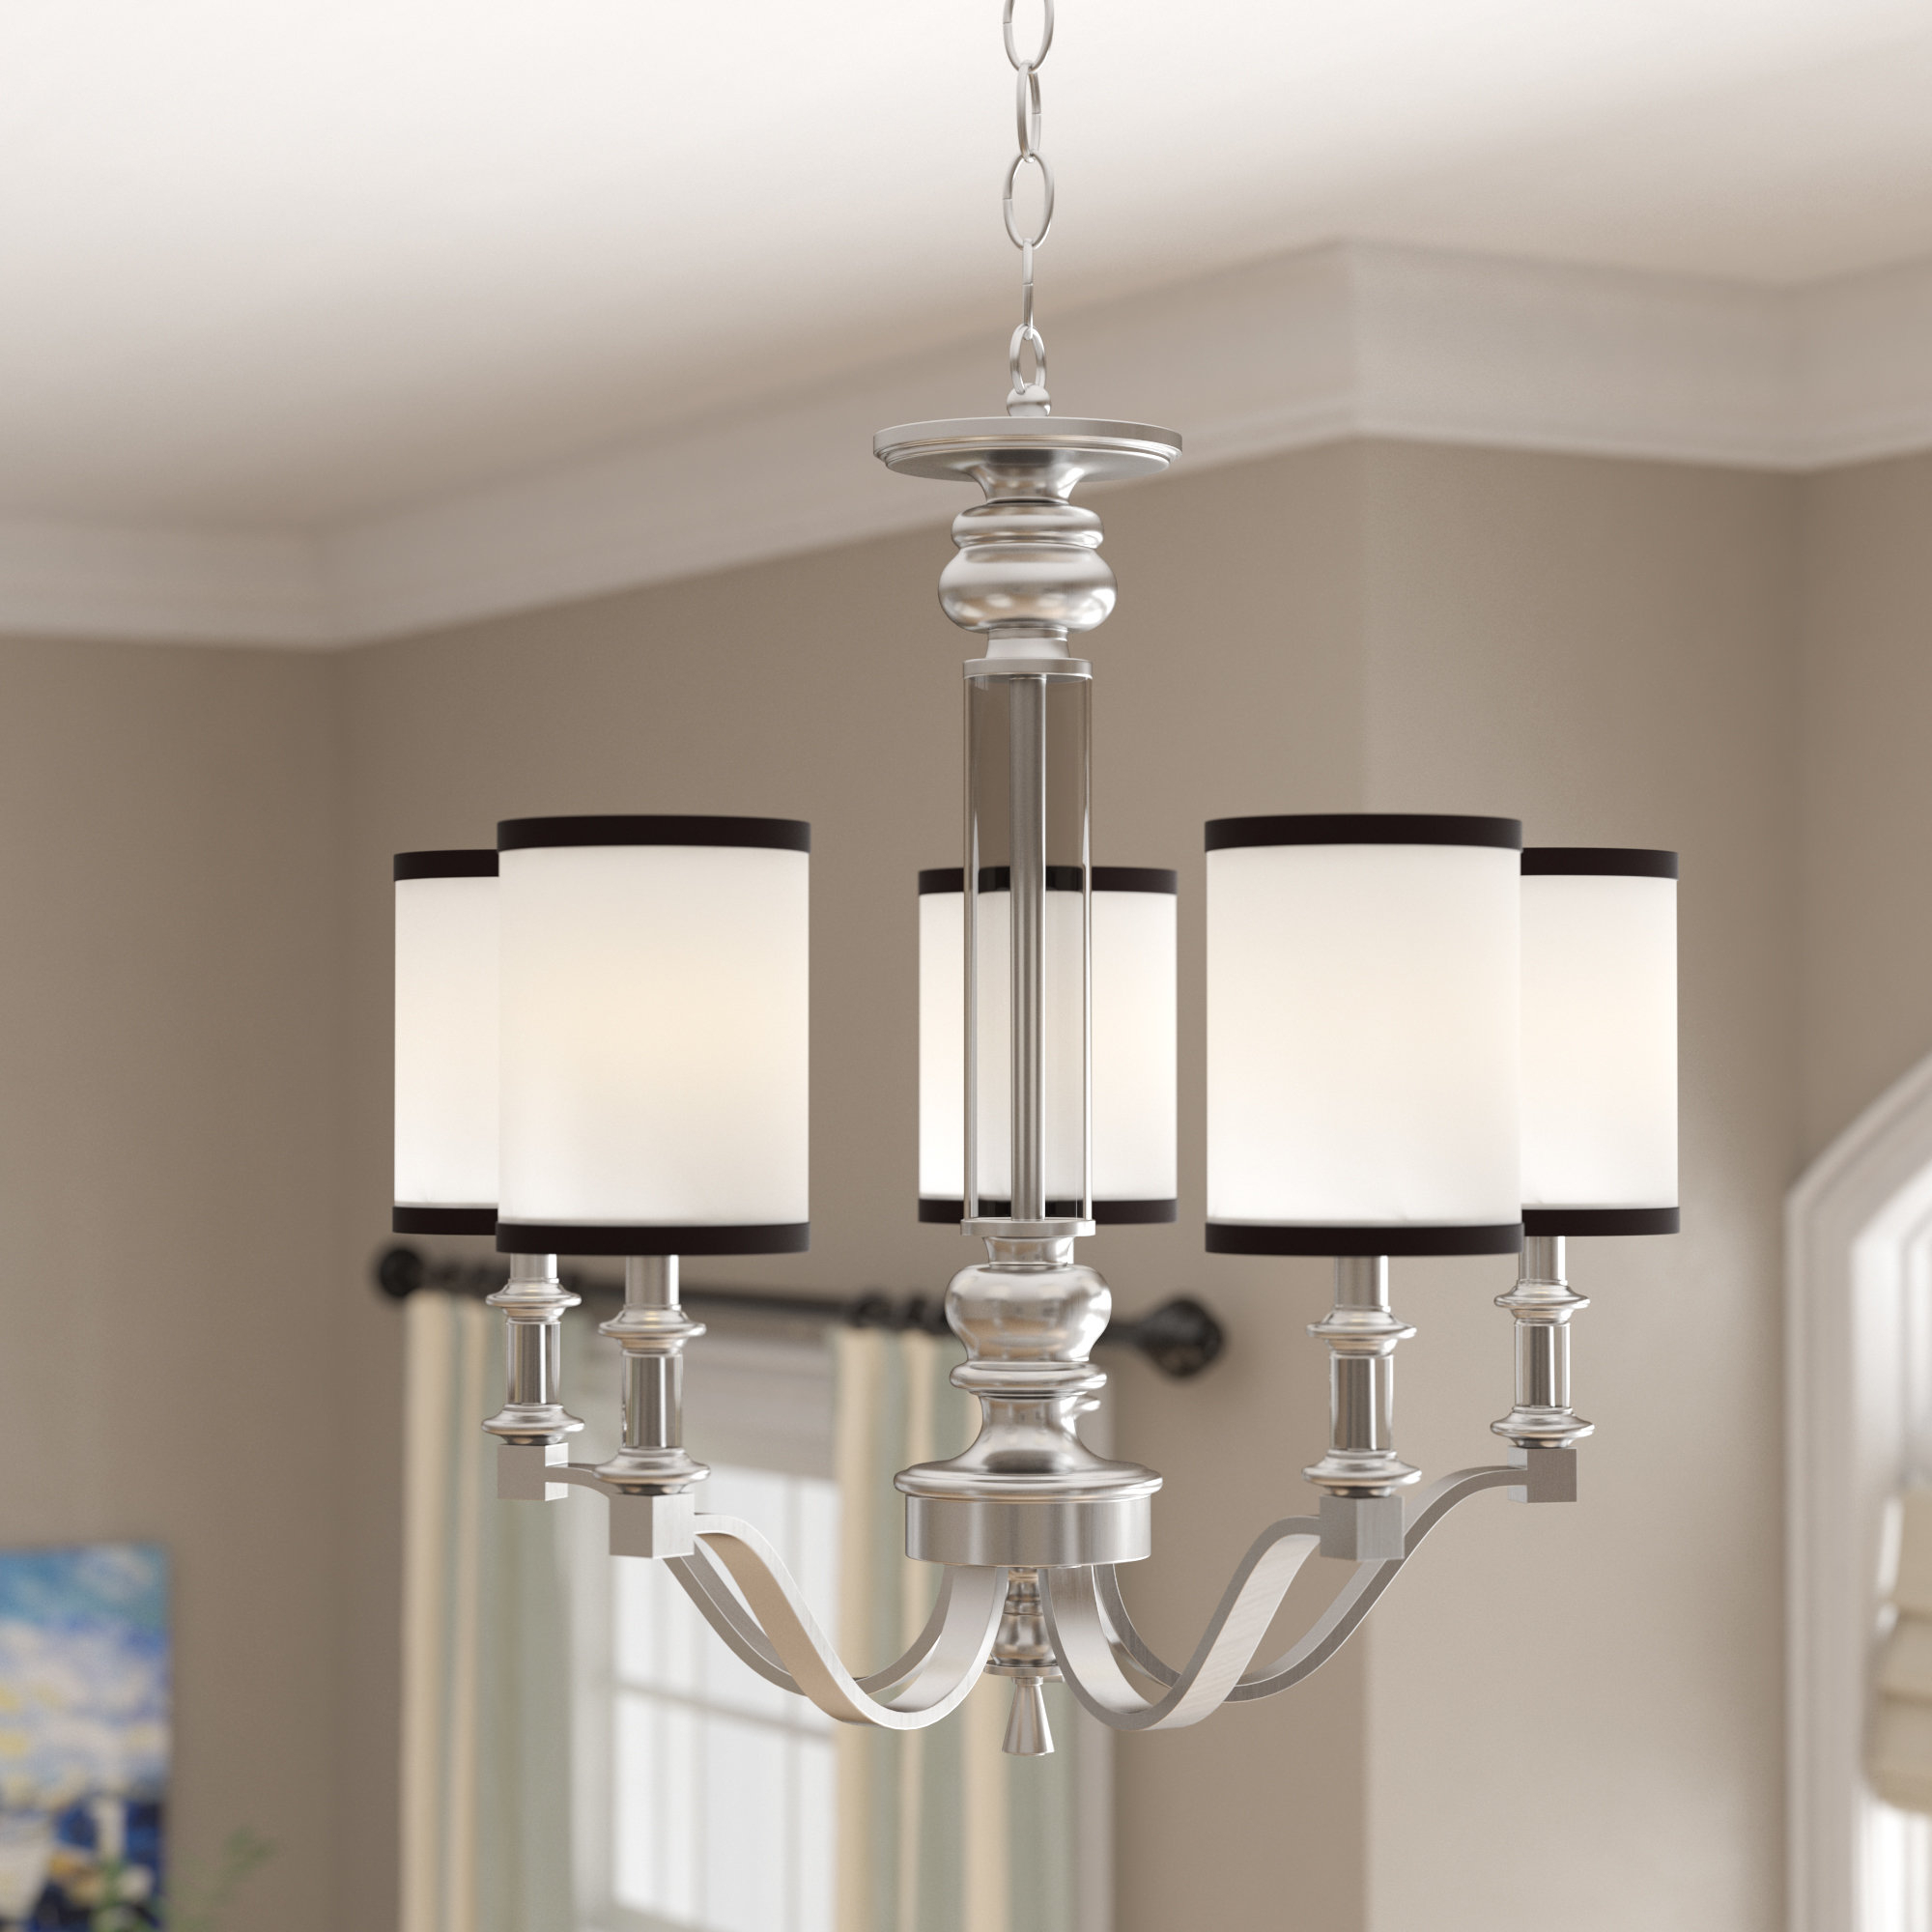 Crofoot 5 Light Shaded Chandeliers Throughout Most Up To Date Breakwater Bay Pfeffer 5 Light Shaded Chandelier & Reviews (View 6 of 20)